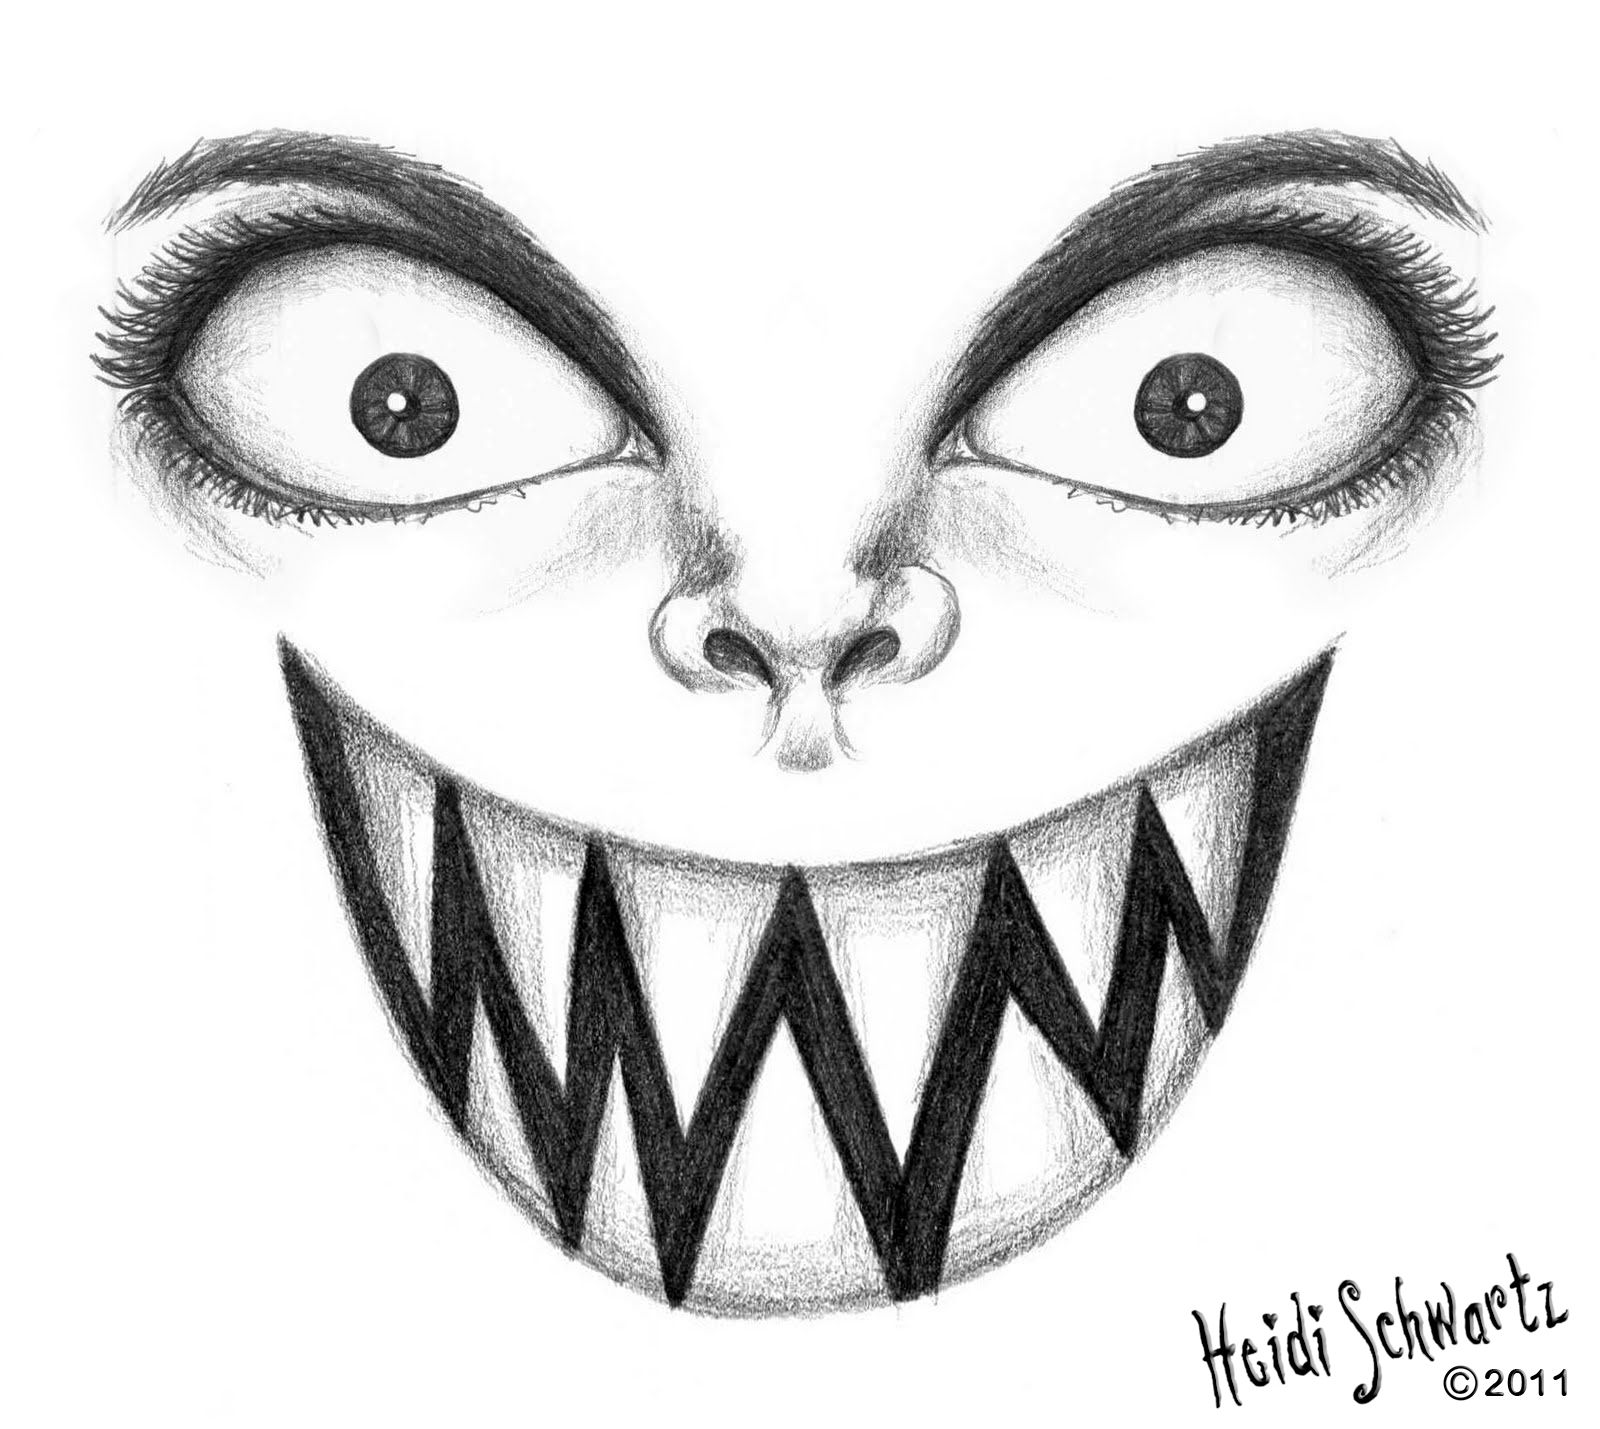 Creepy Halloween Drawings Halloween Arts Scary Drawings Halloween Drawings Easy Drawings Sketches